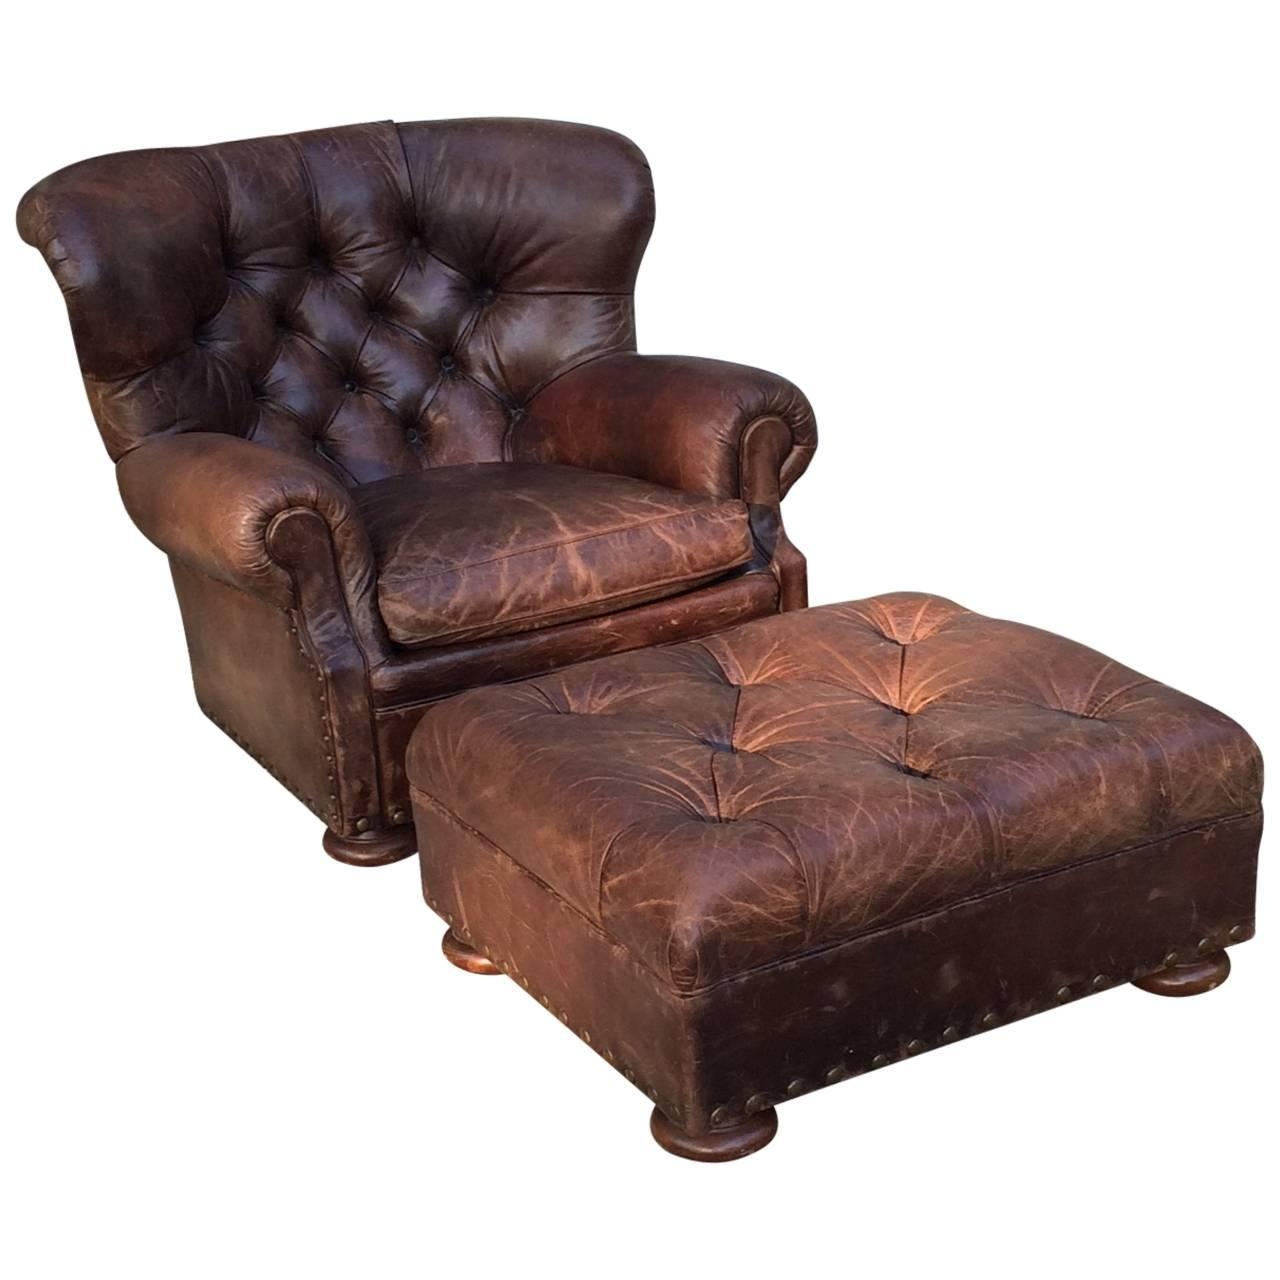 tufted chair and ottoman tween table chairs handsome large ralph lauren button club